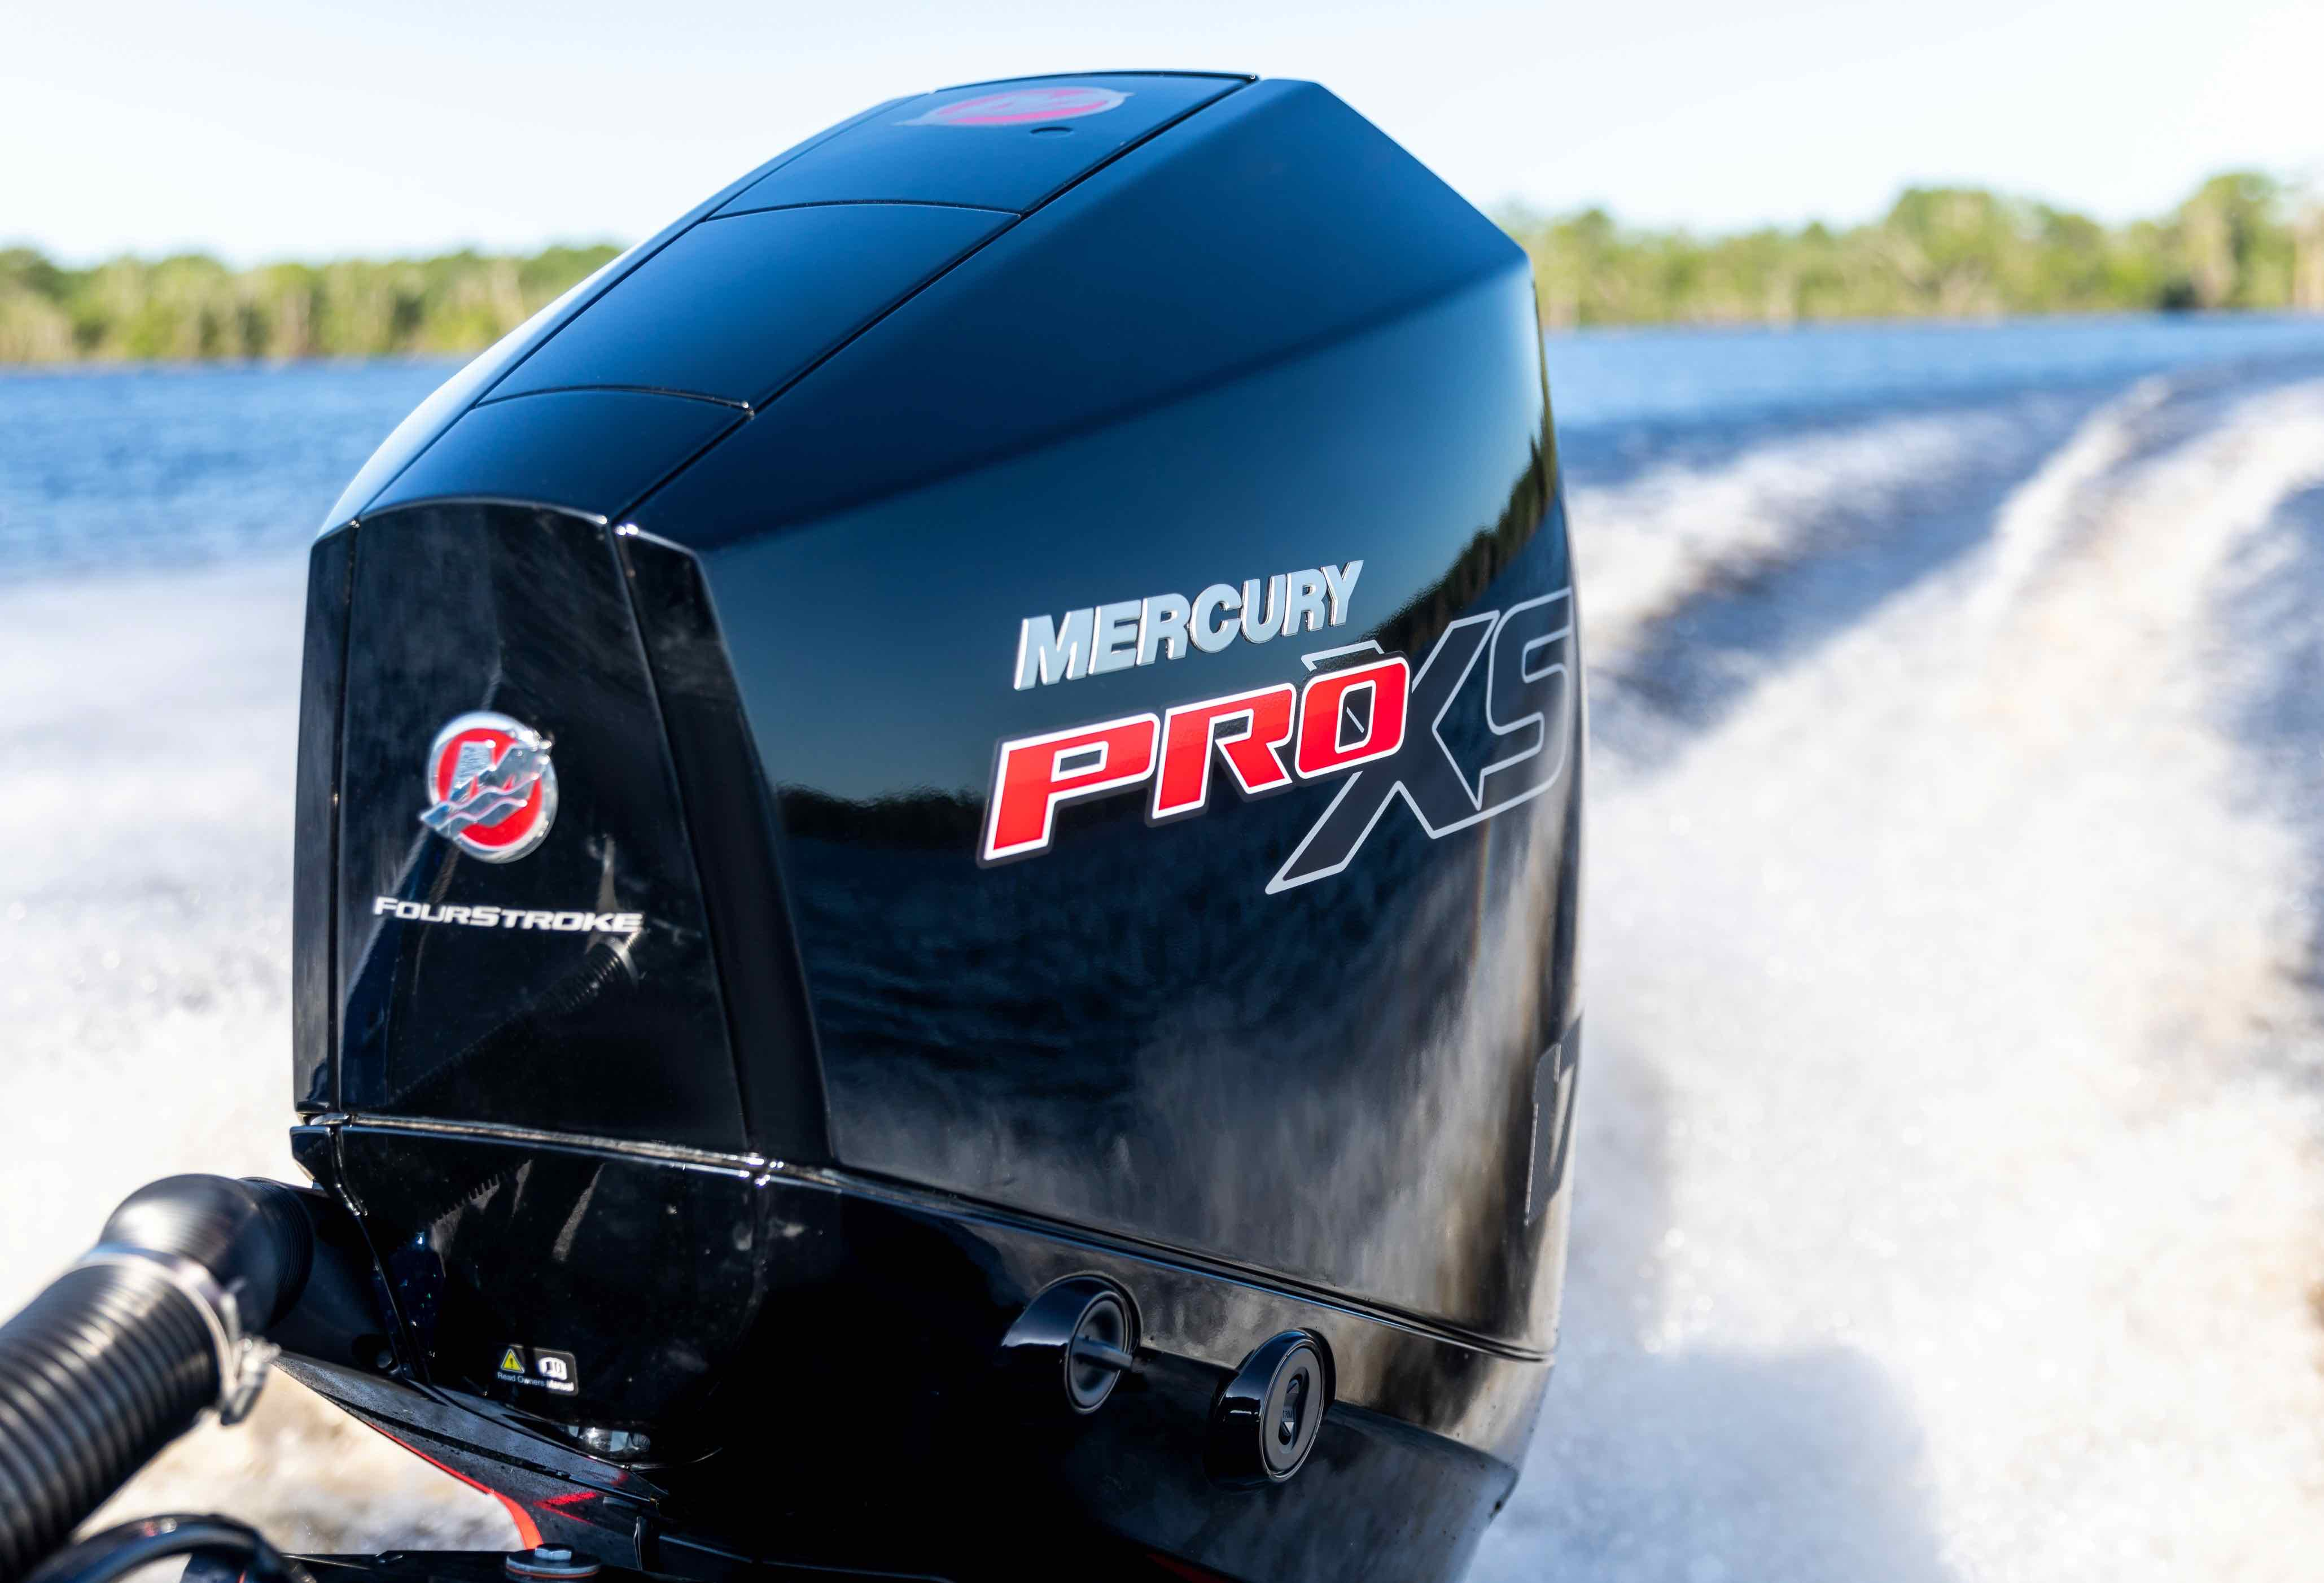 New V-8 and V-6 Engines for Mercury's Powerful Pro XS Range | ABT